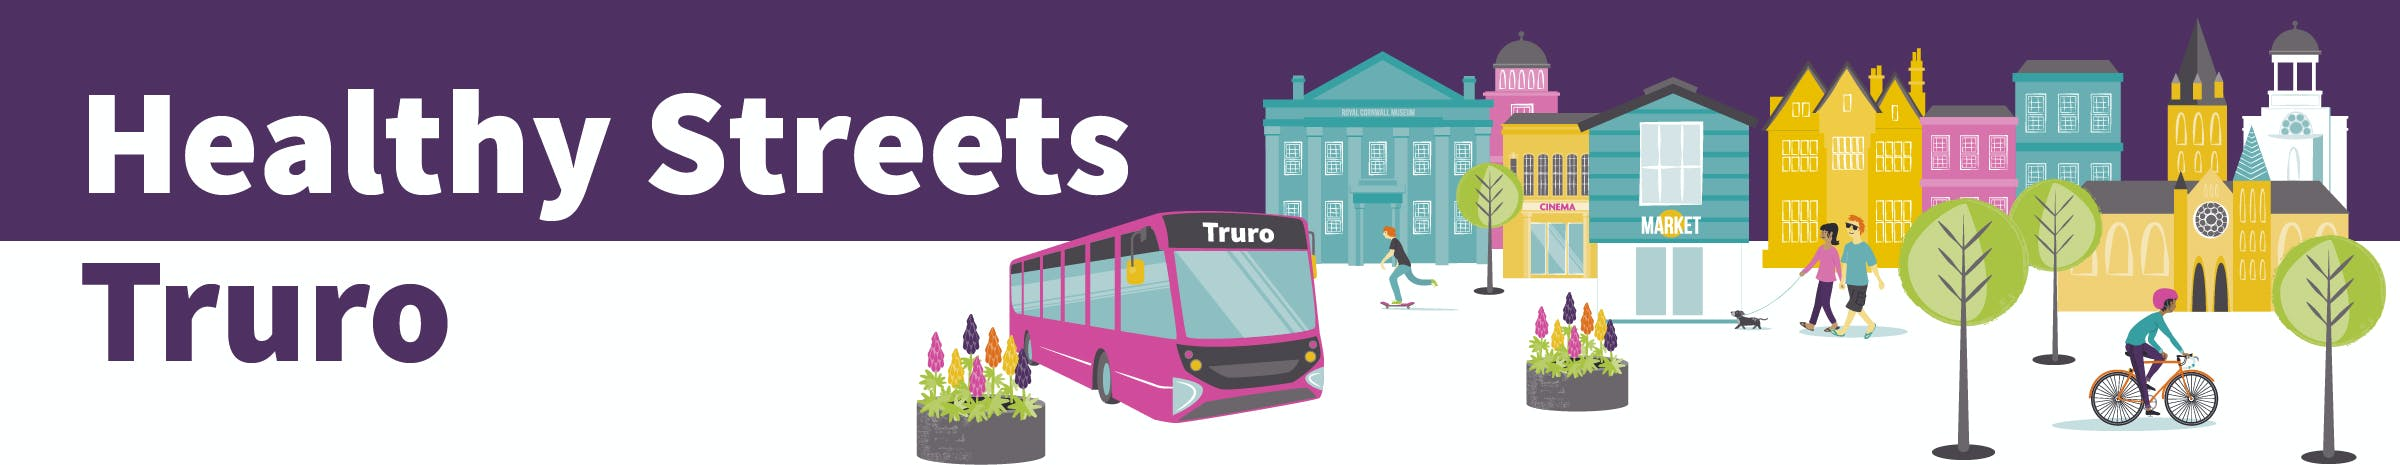 Healthy Streets Truro: creating a better environment for all and revitalising the local economy.